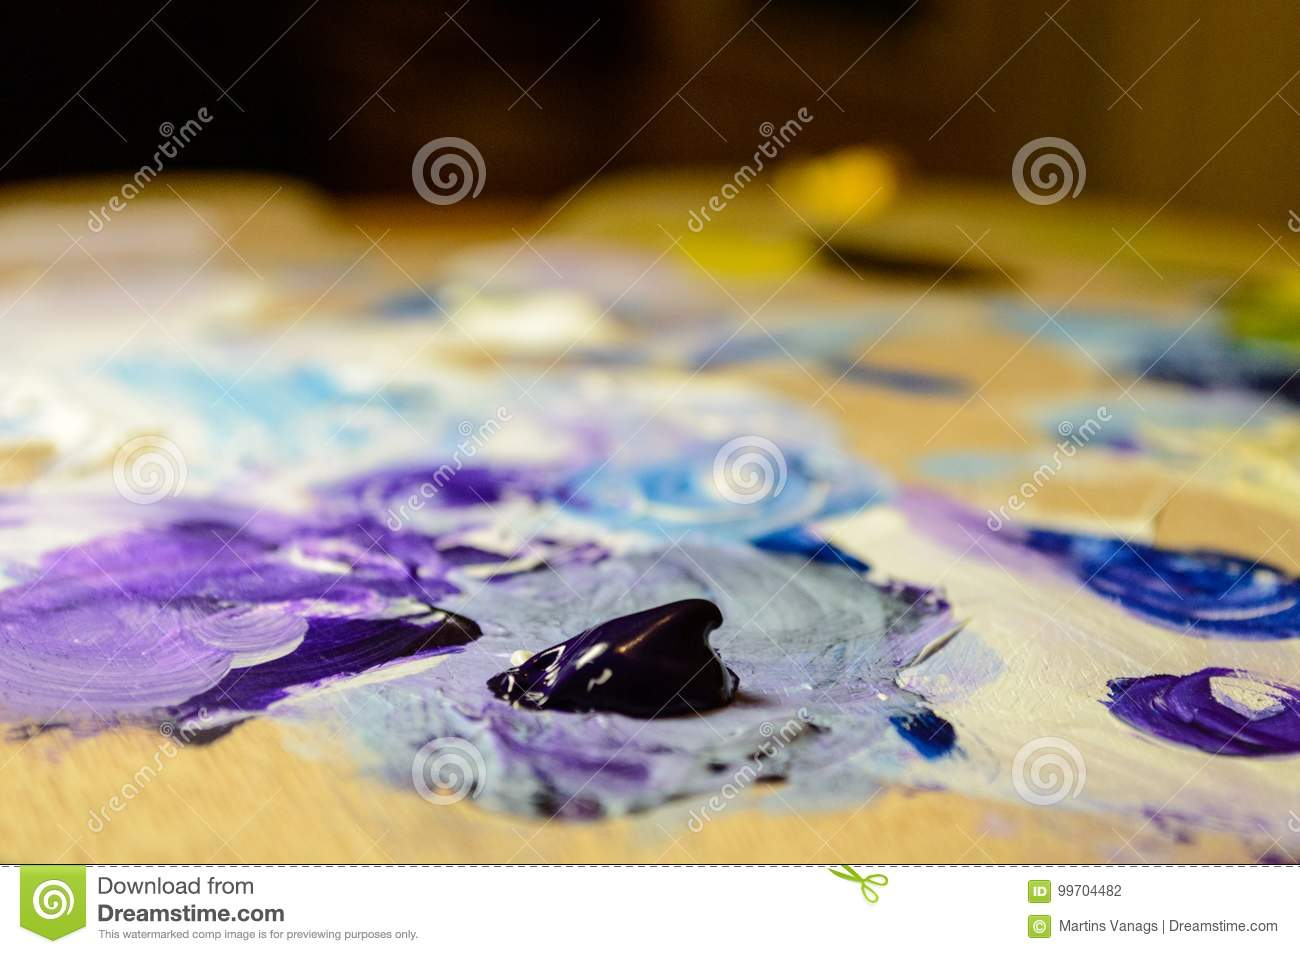 Artist Painting With Acrylic Colors And Mixing Tones Stock